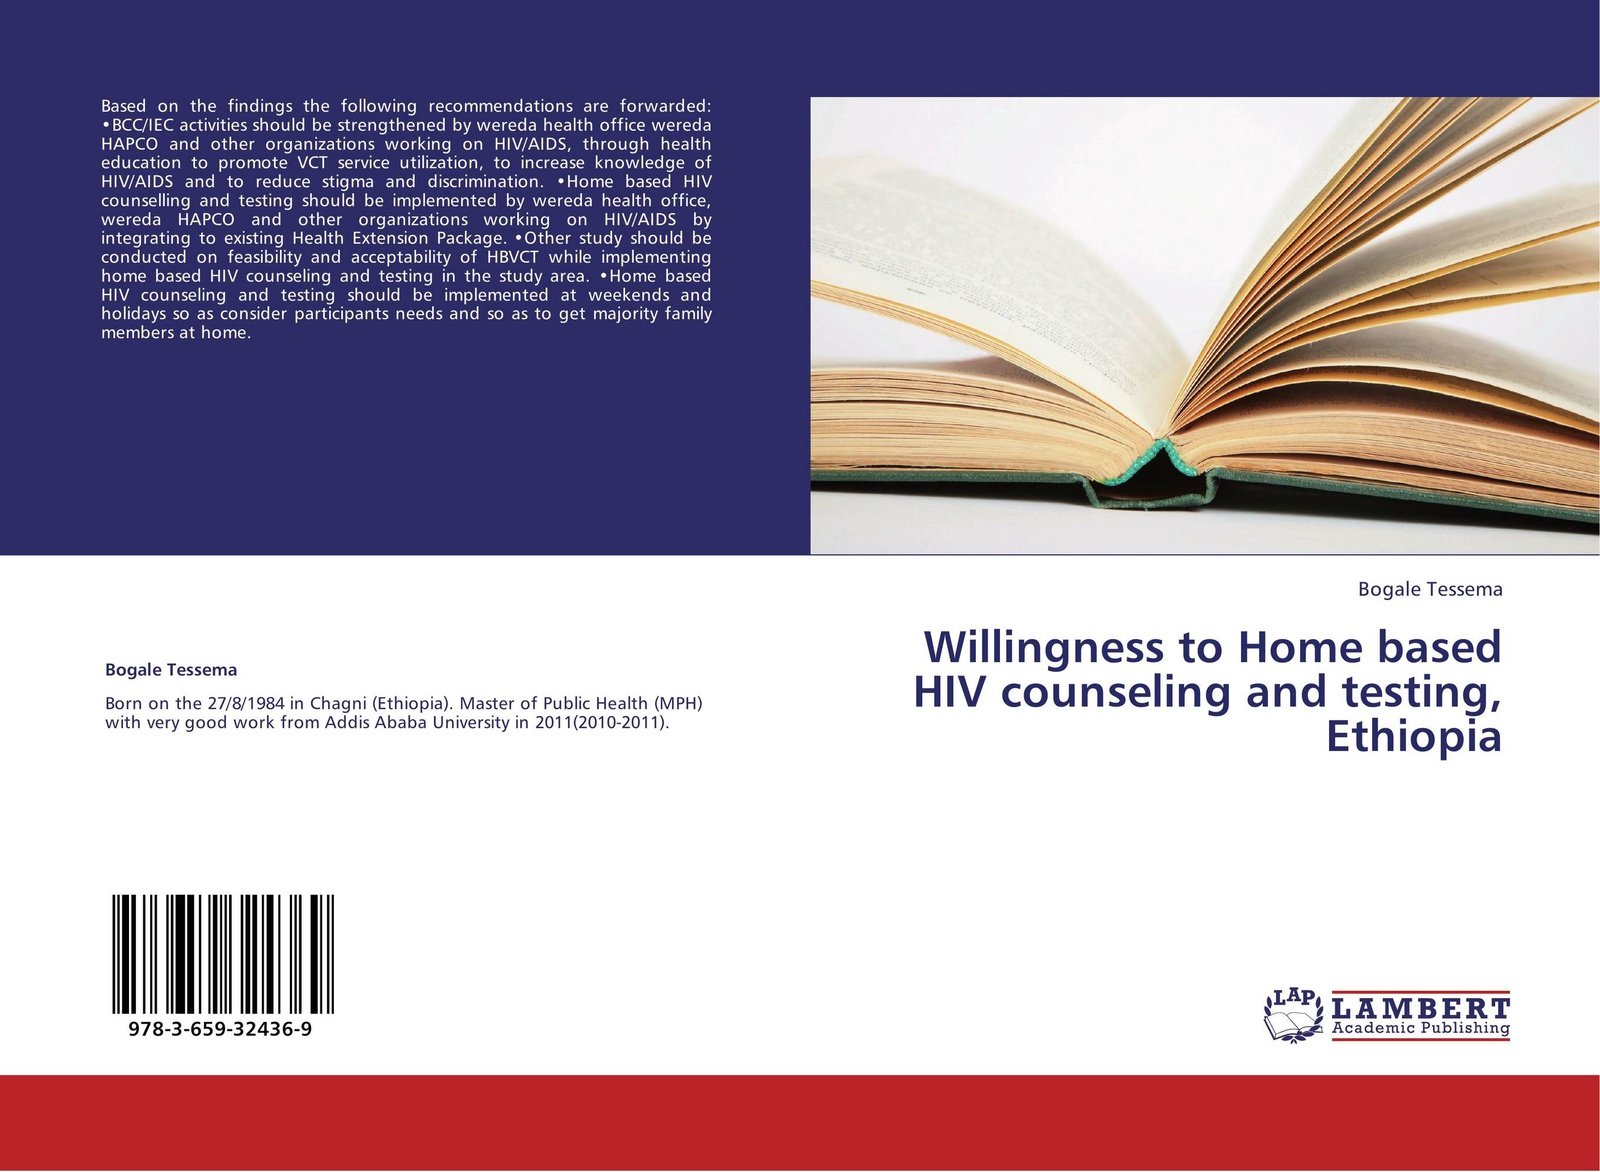 Bogale Tessema Willingness to Home based HIV counseling and testing, Ethiopia mental health and hiv aids